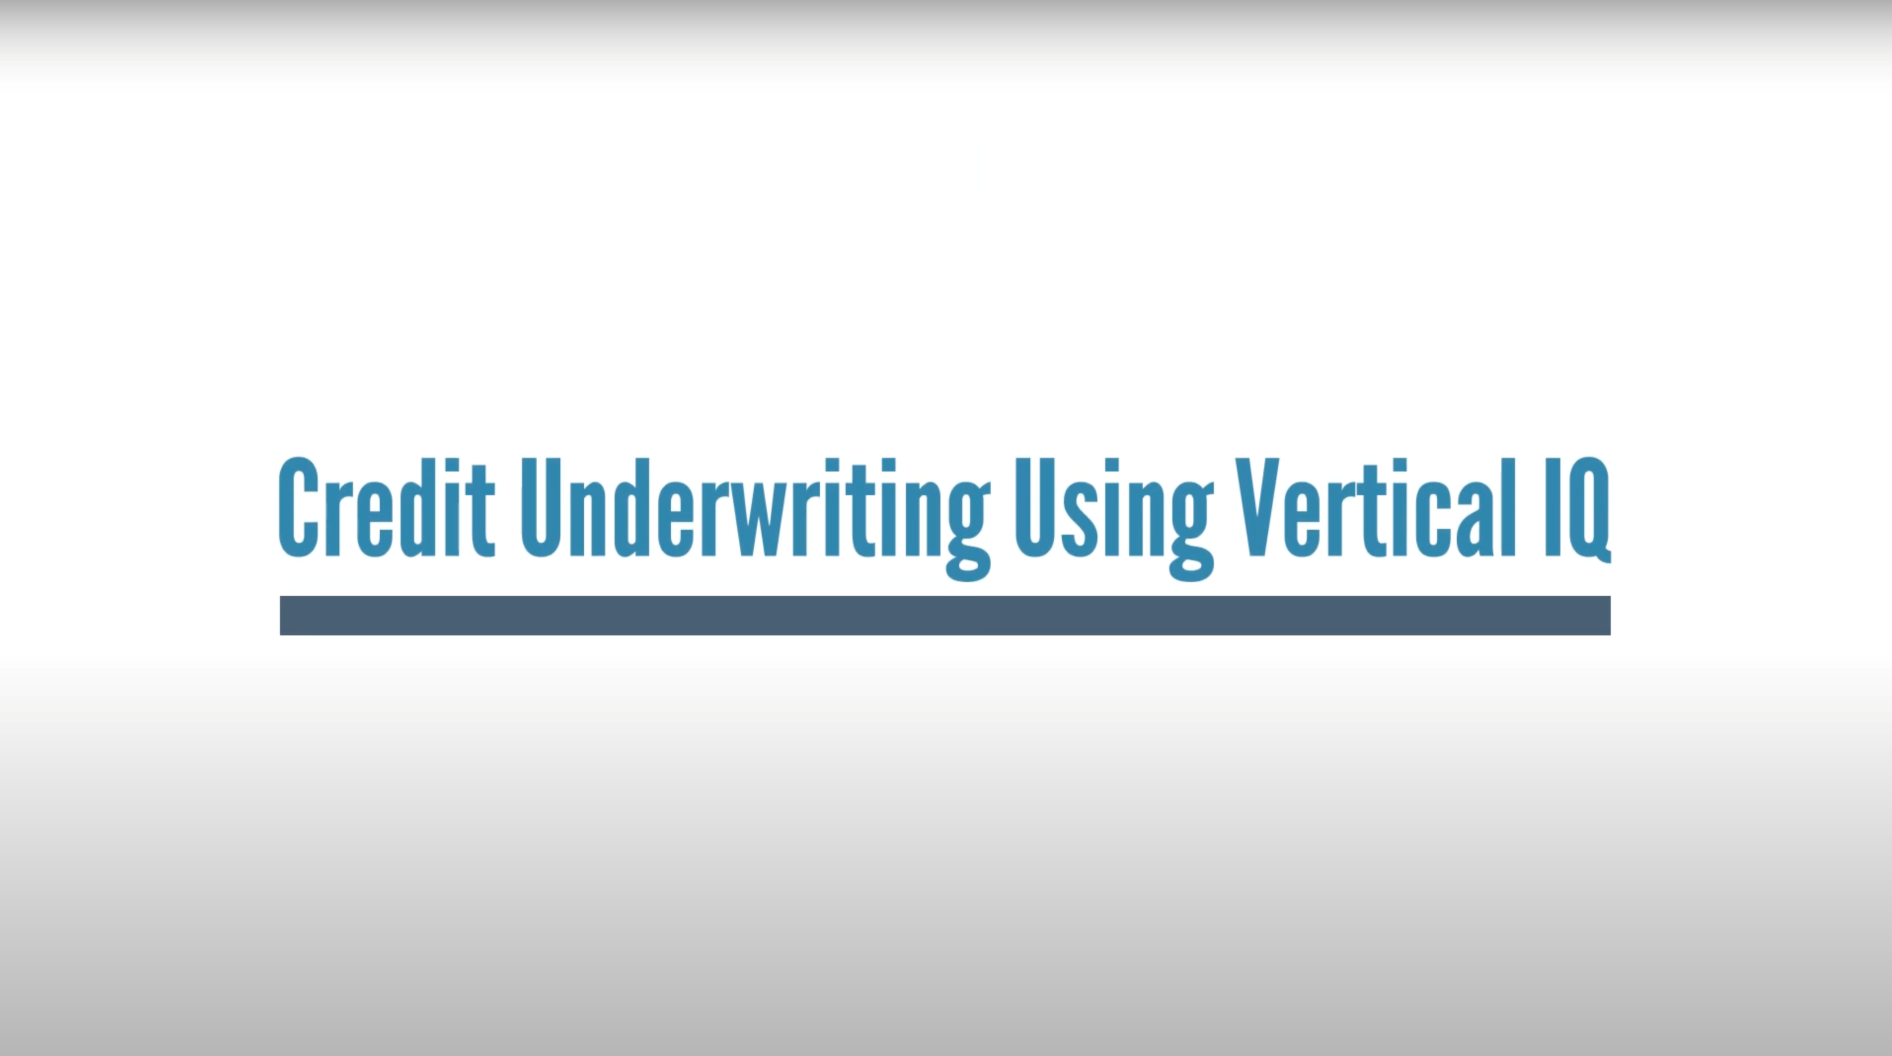 Credit Underwriting Using Vertical IQ